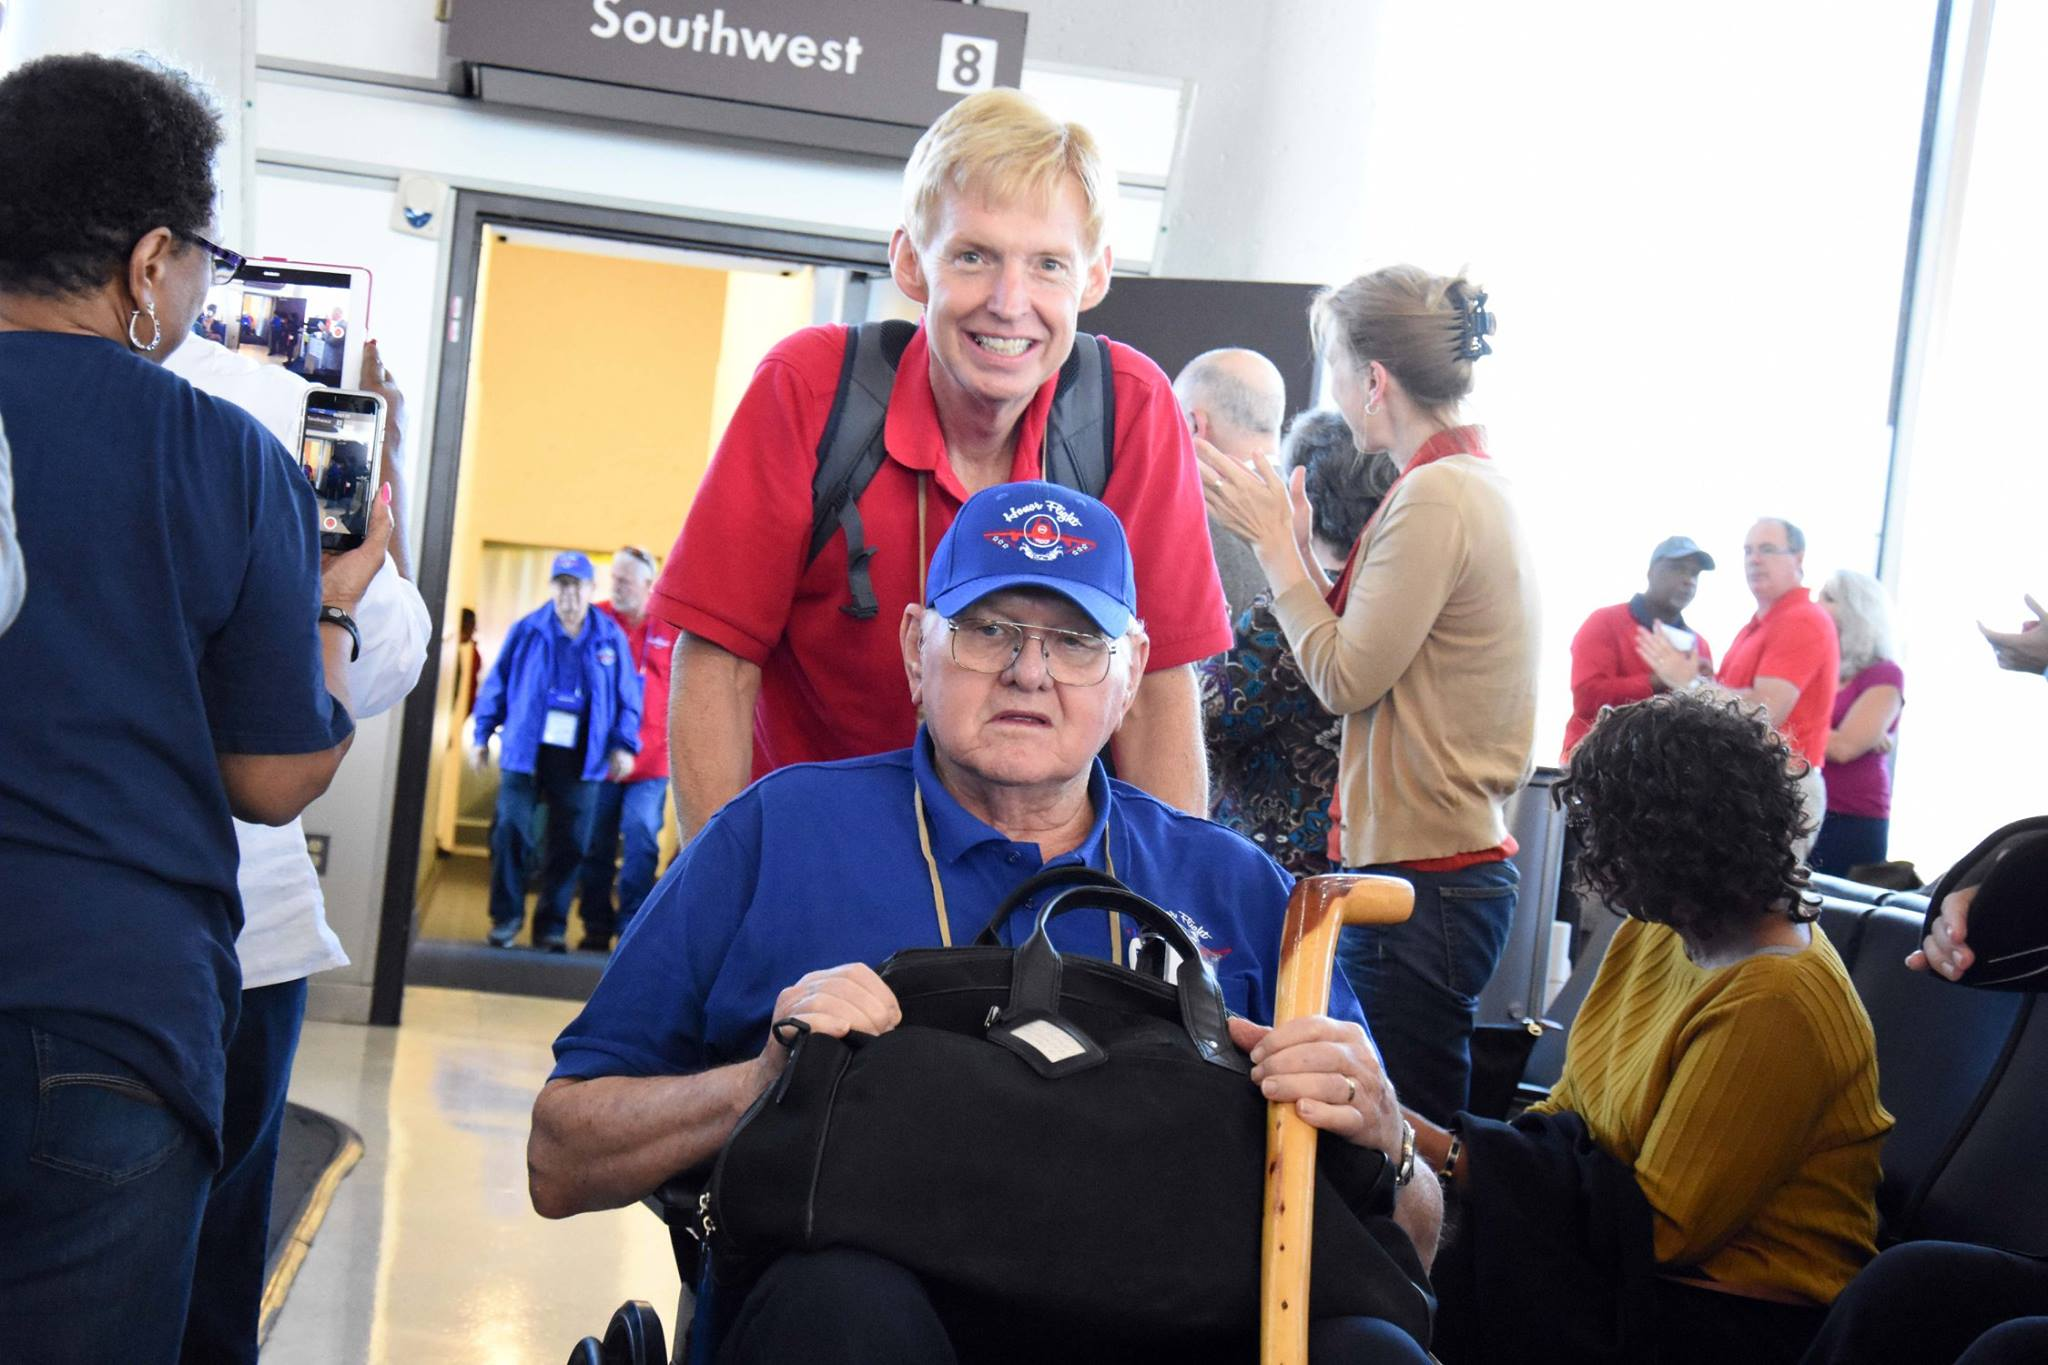 Honor Flight DFW 8th Annual Golf Classic gallery image #15